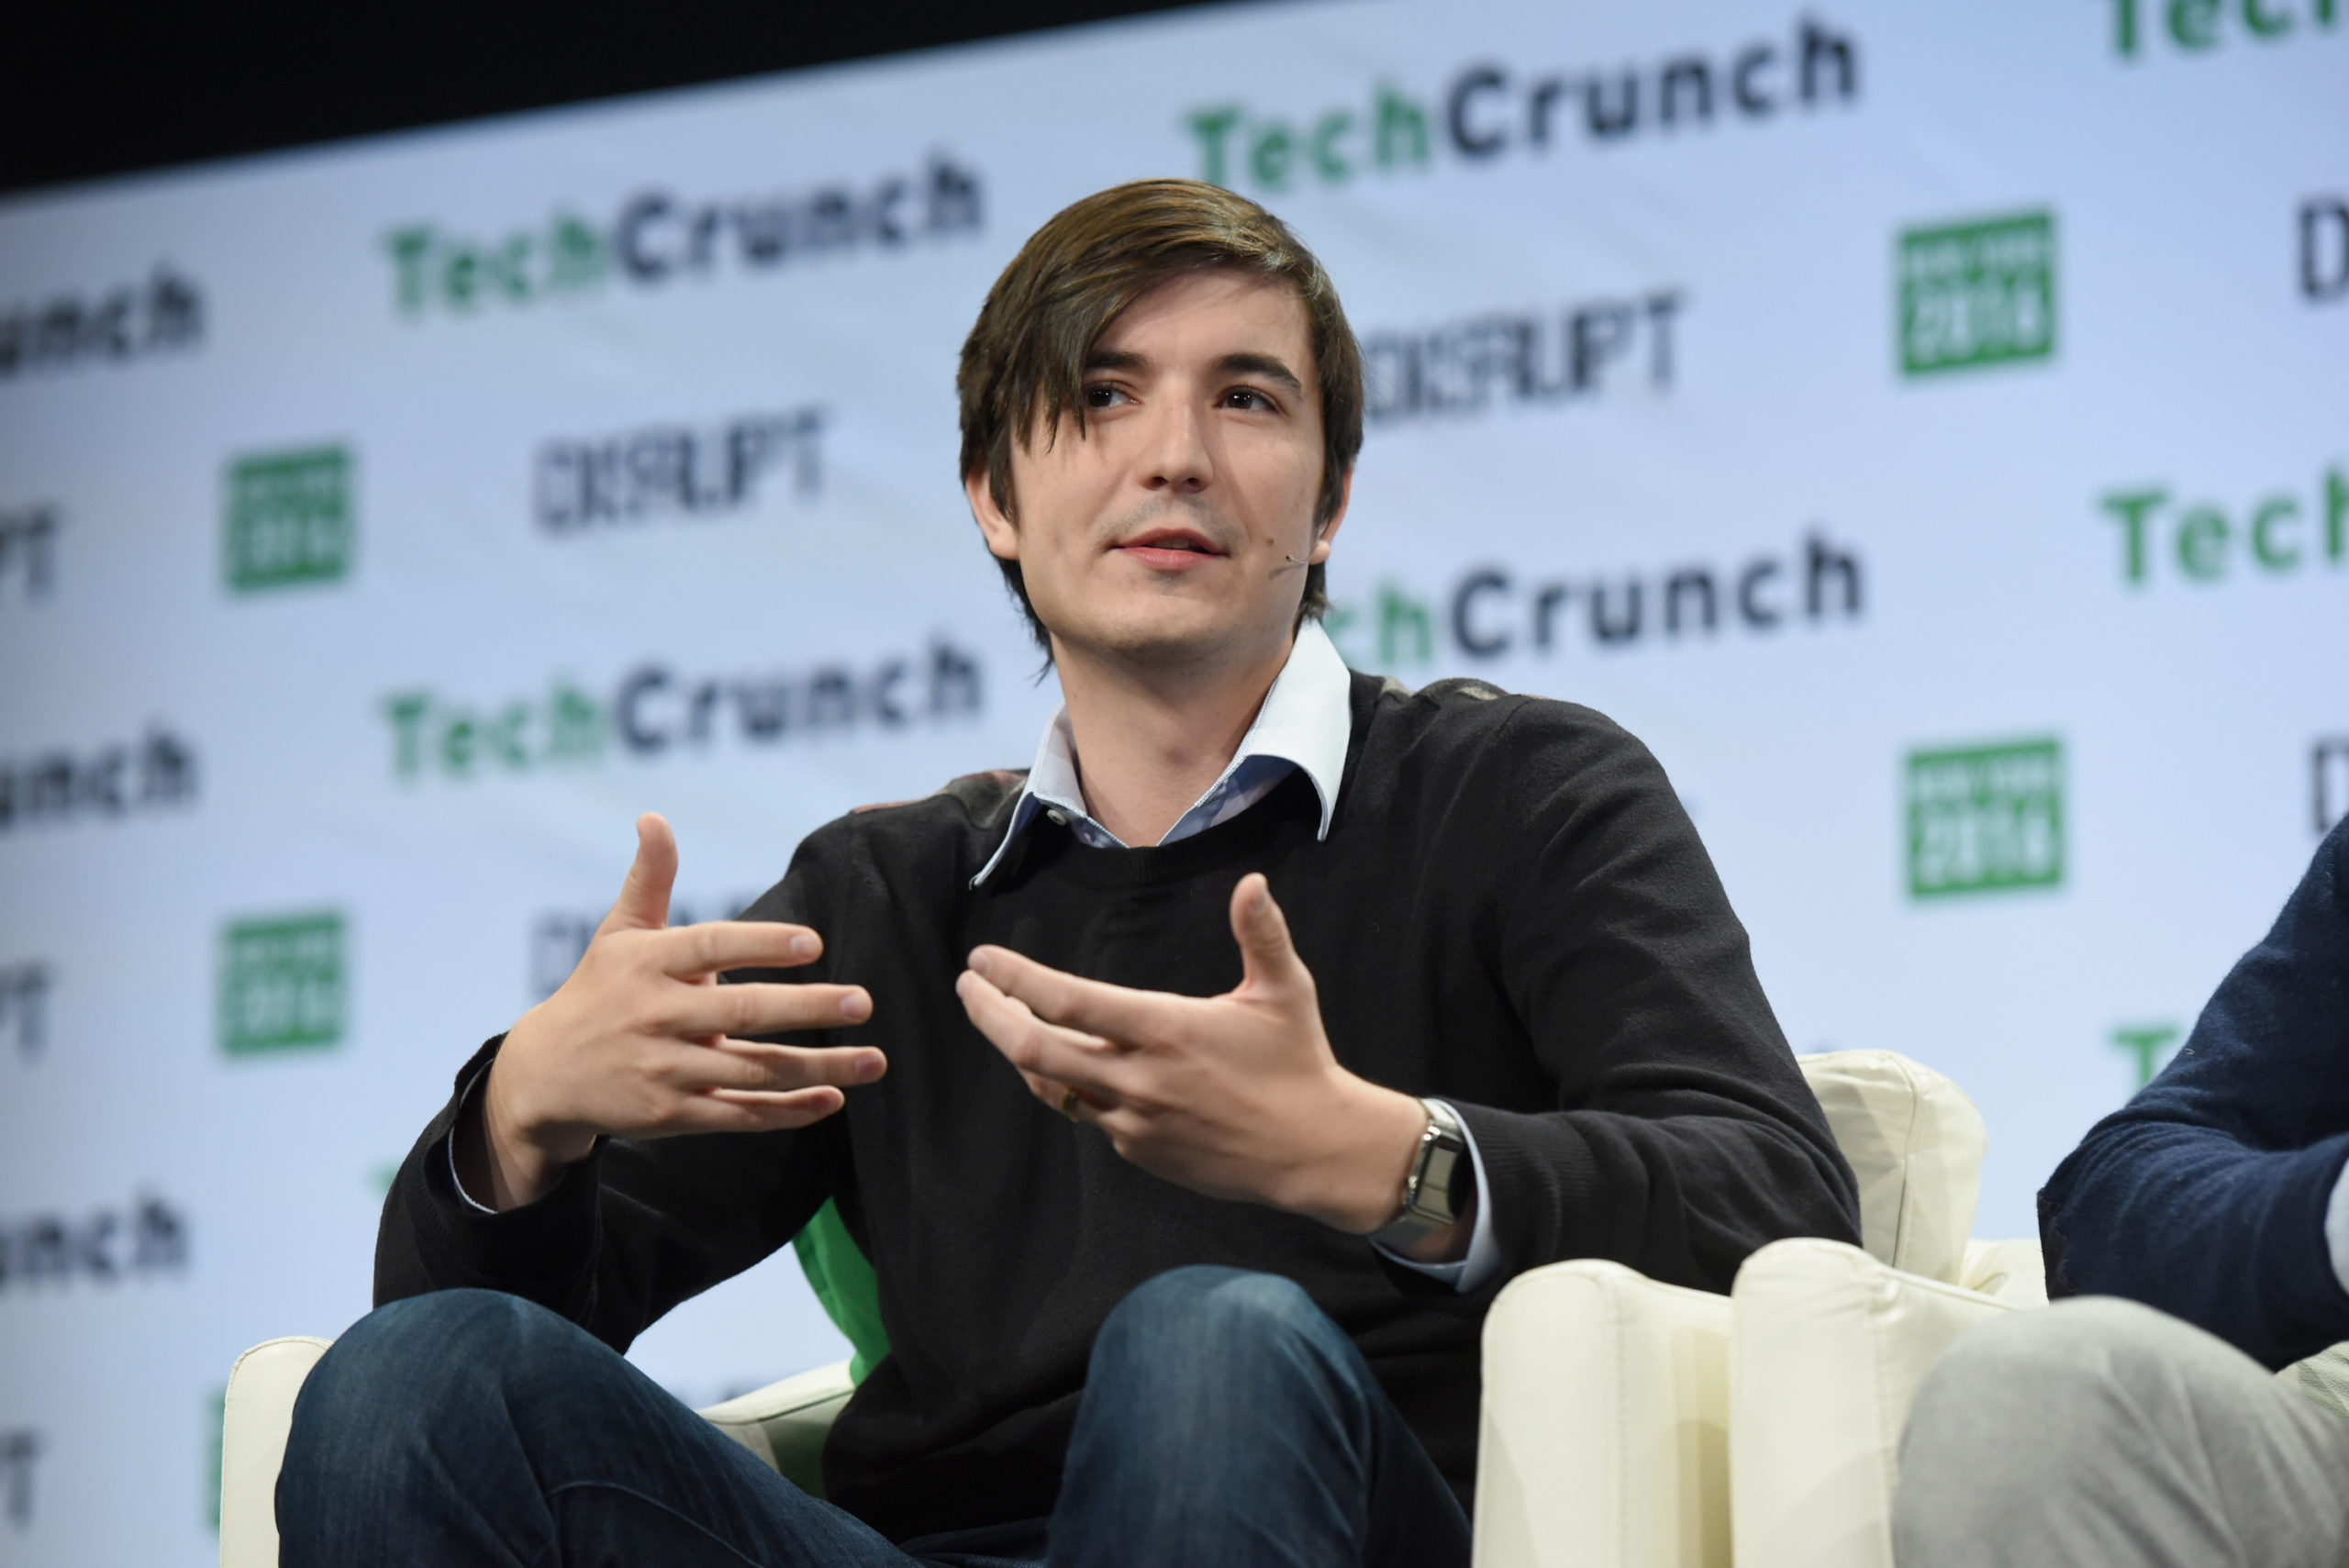 CEO of Robinhood Vladimir Tenev speaks onstage during the annual Tech Crunch event on May 10, 2016 in New York City. (Noam Galai/Getty Images for TechCrunch)